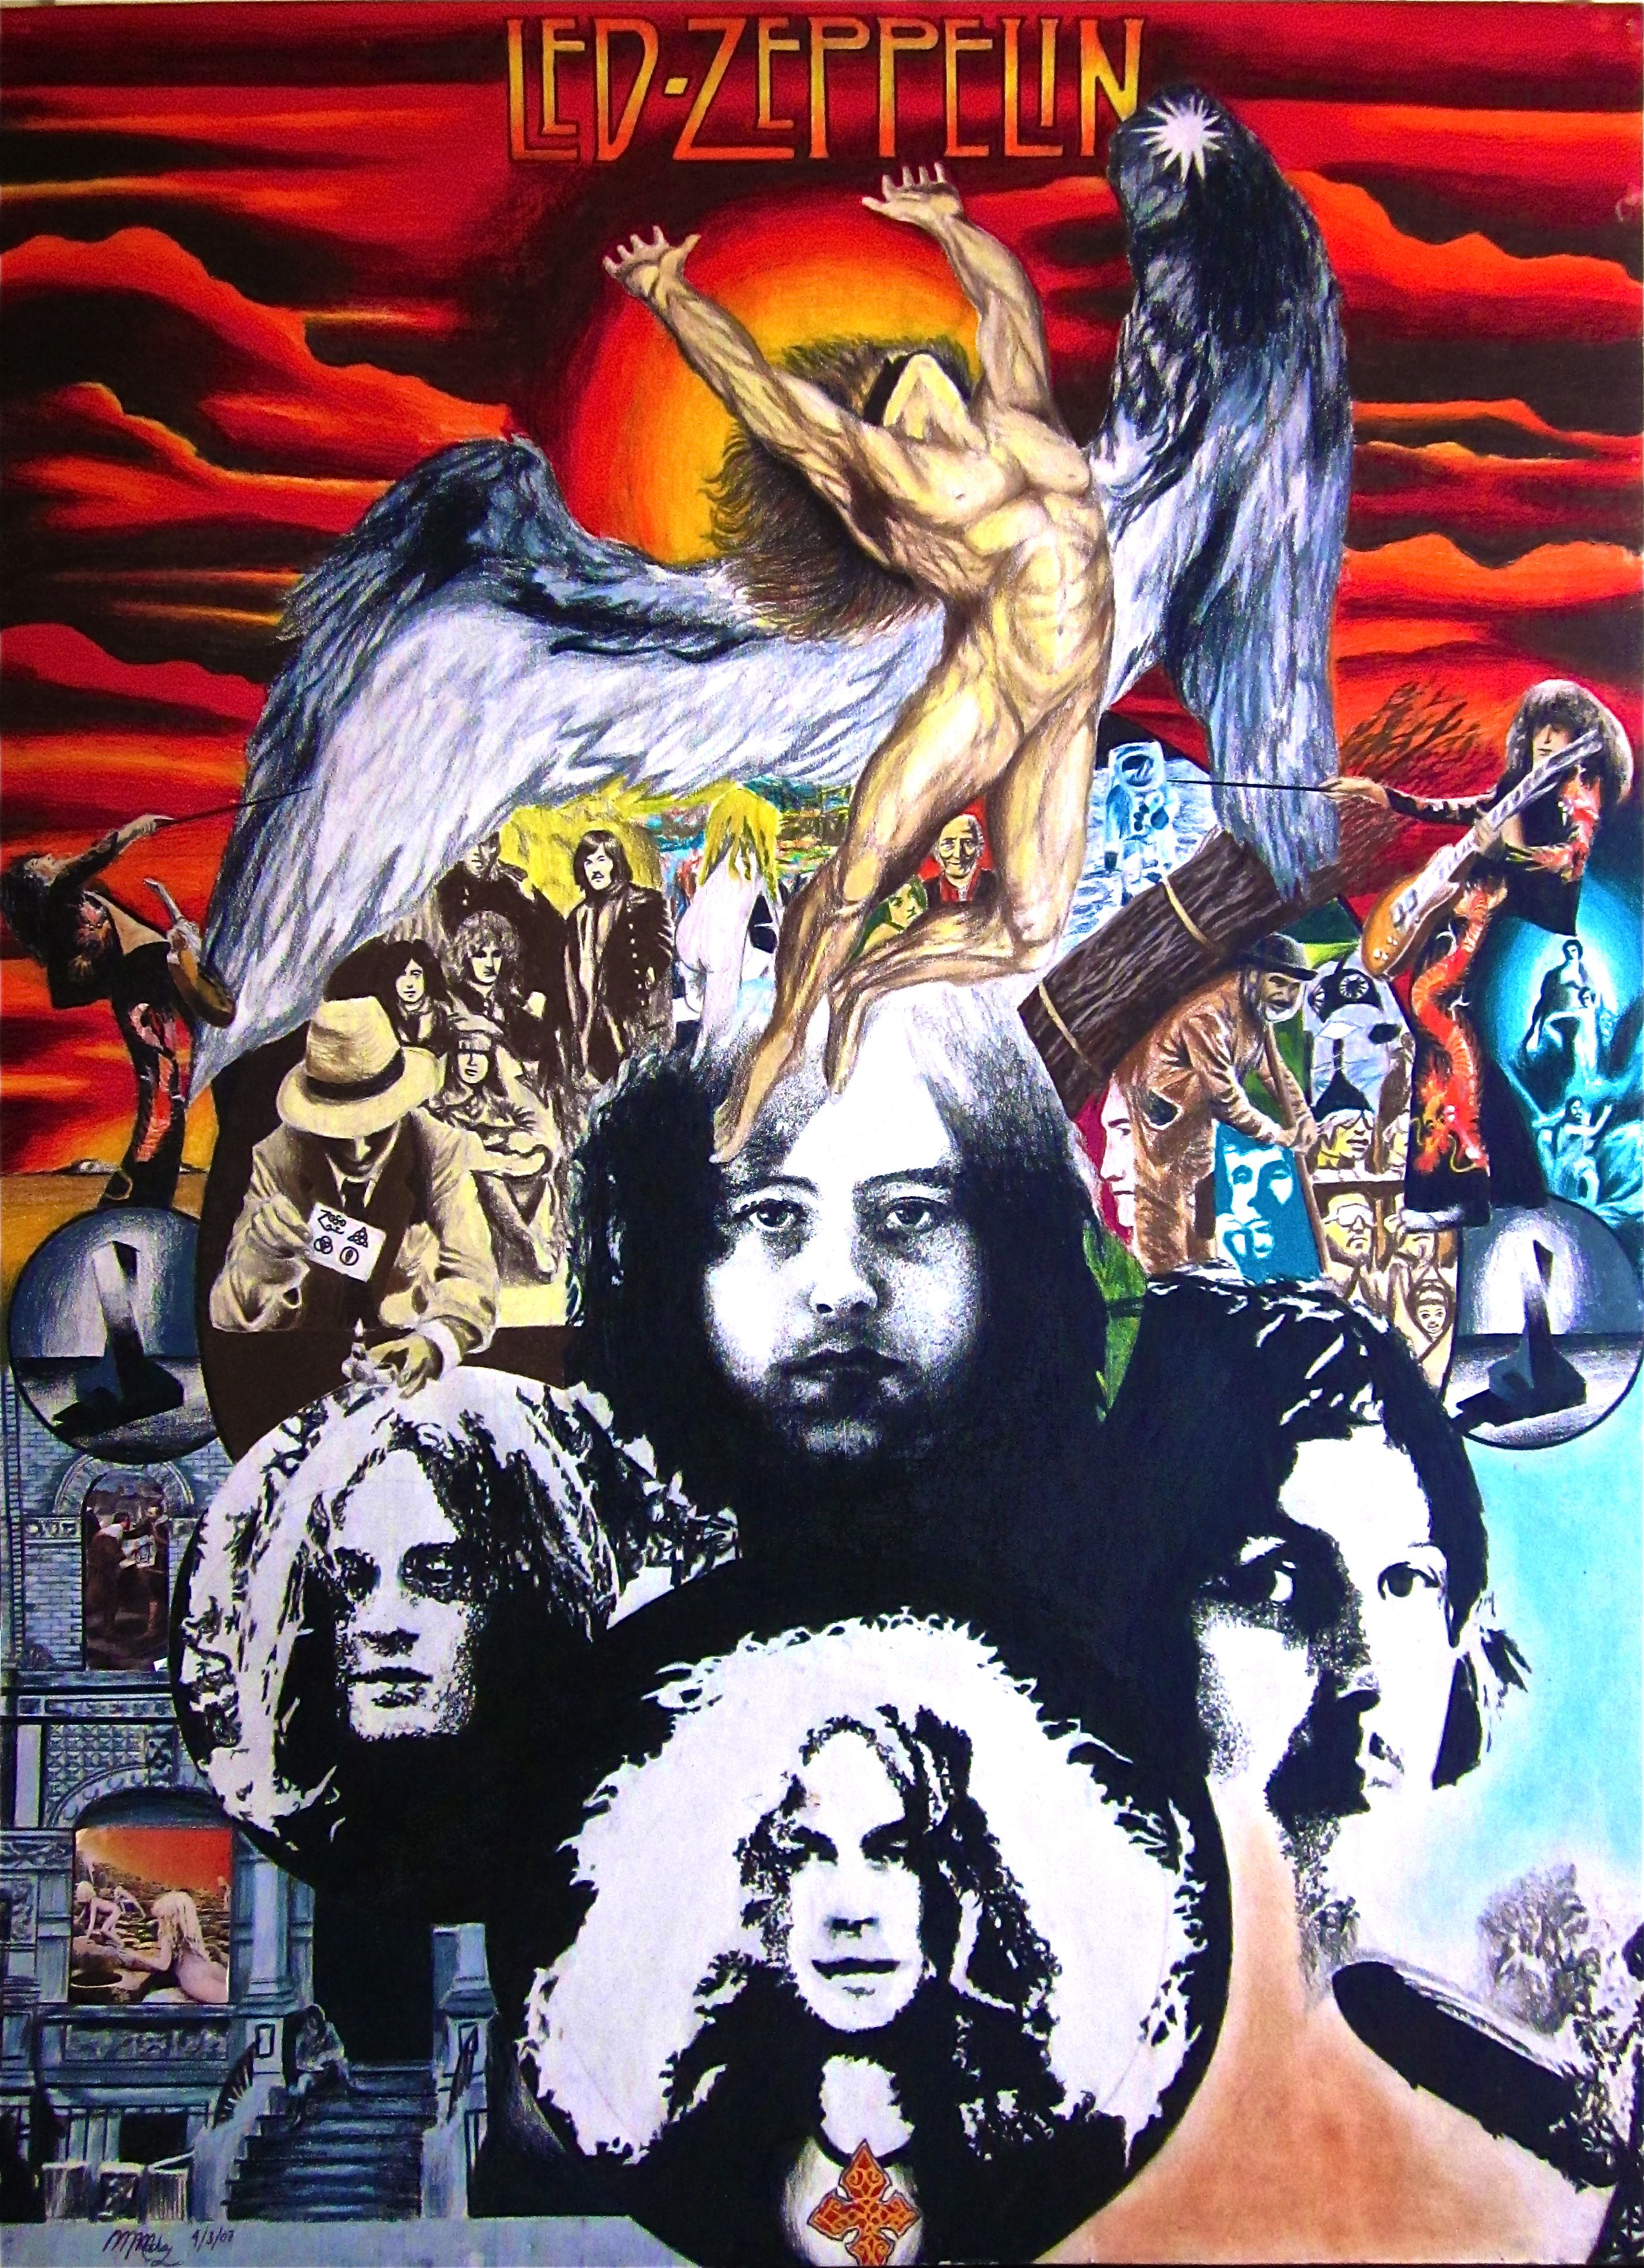 Another collage of all Led Zeppelin covers in different ...